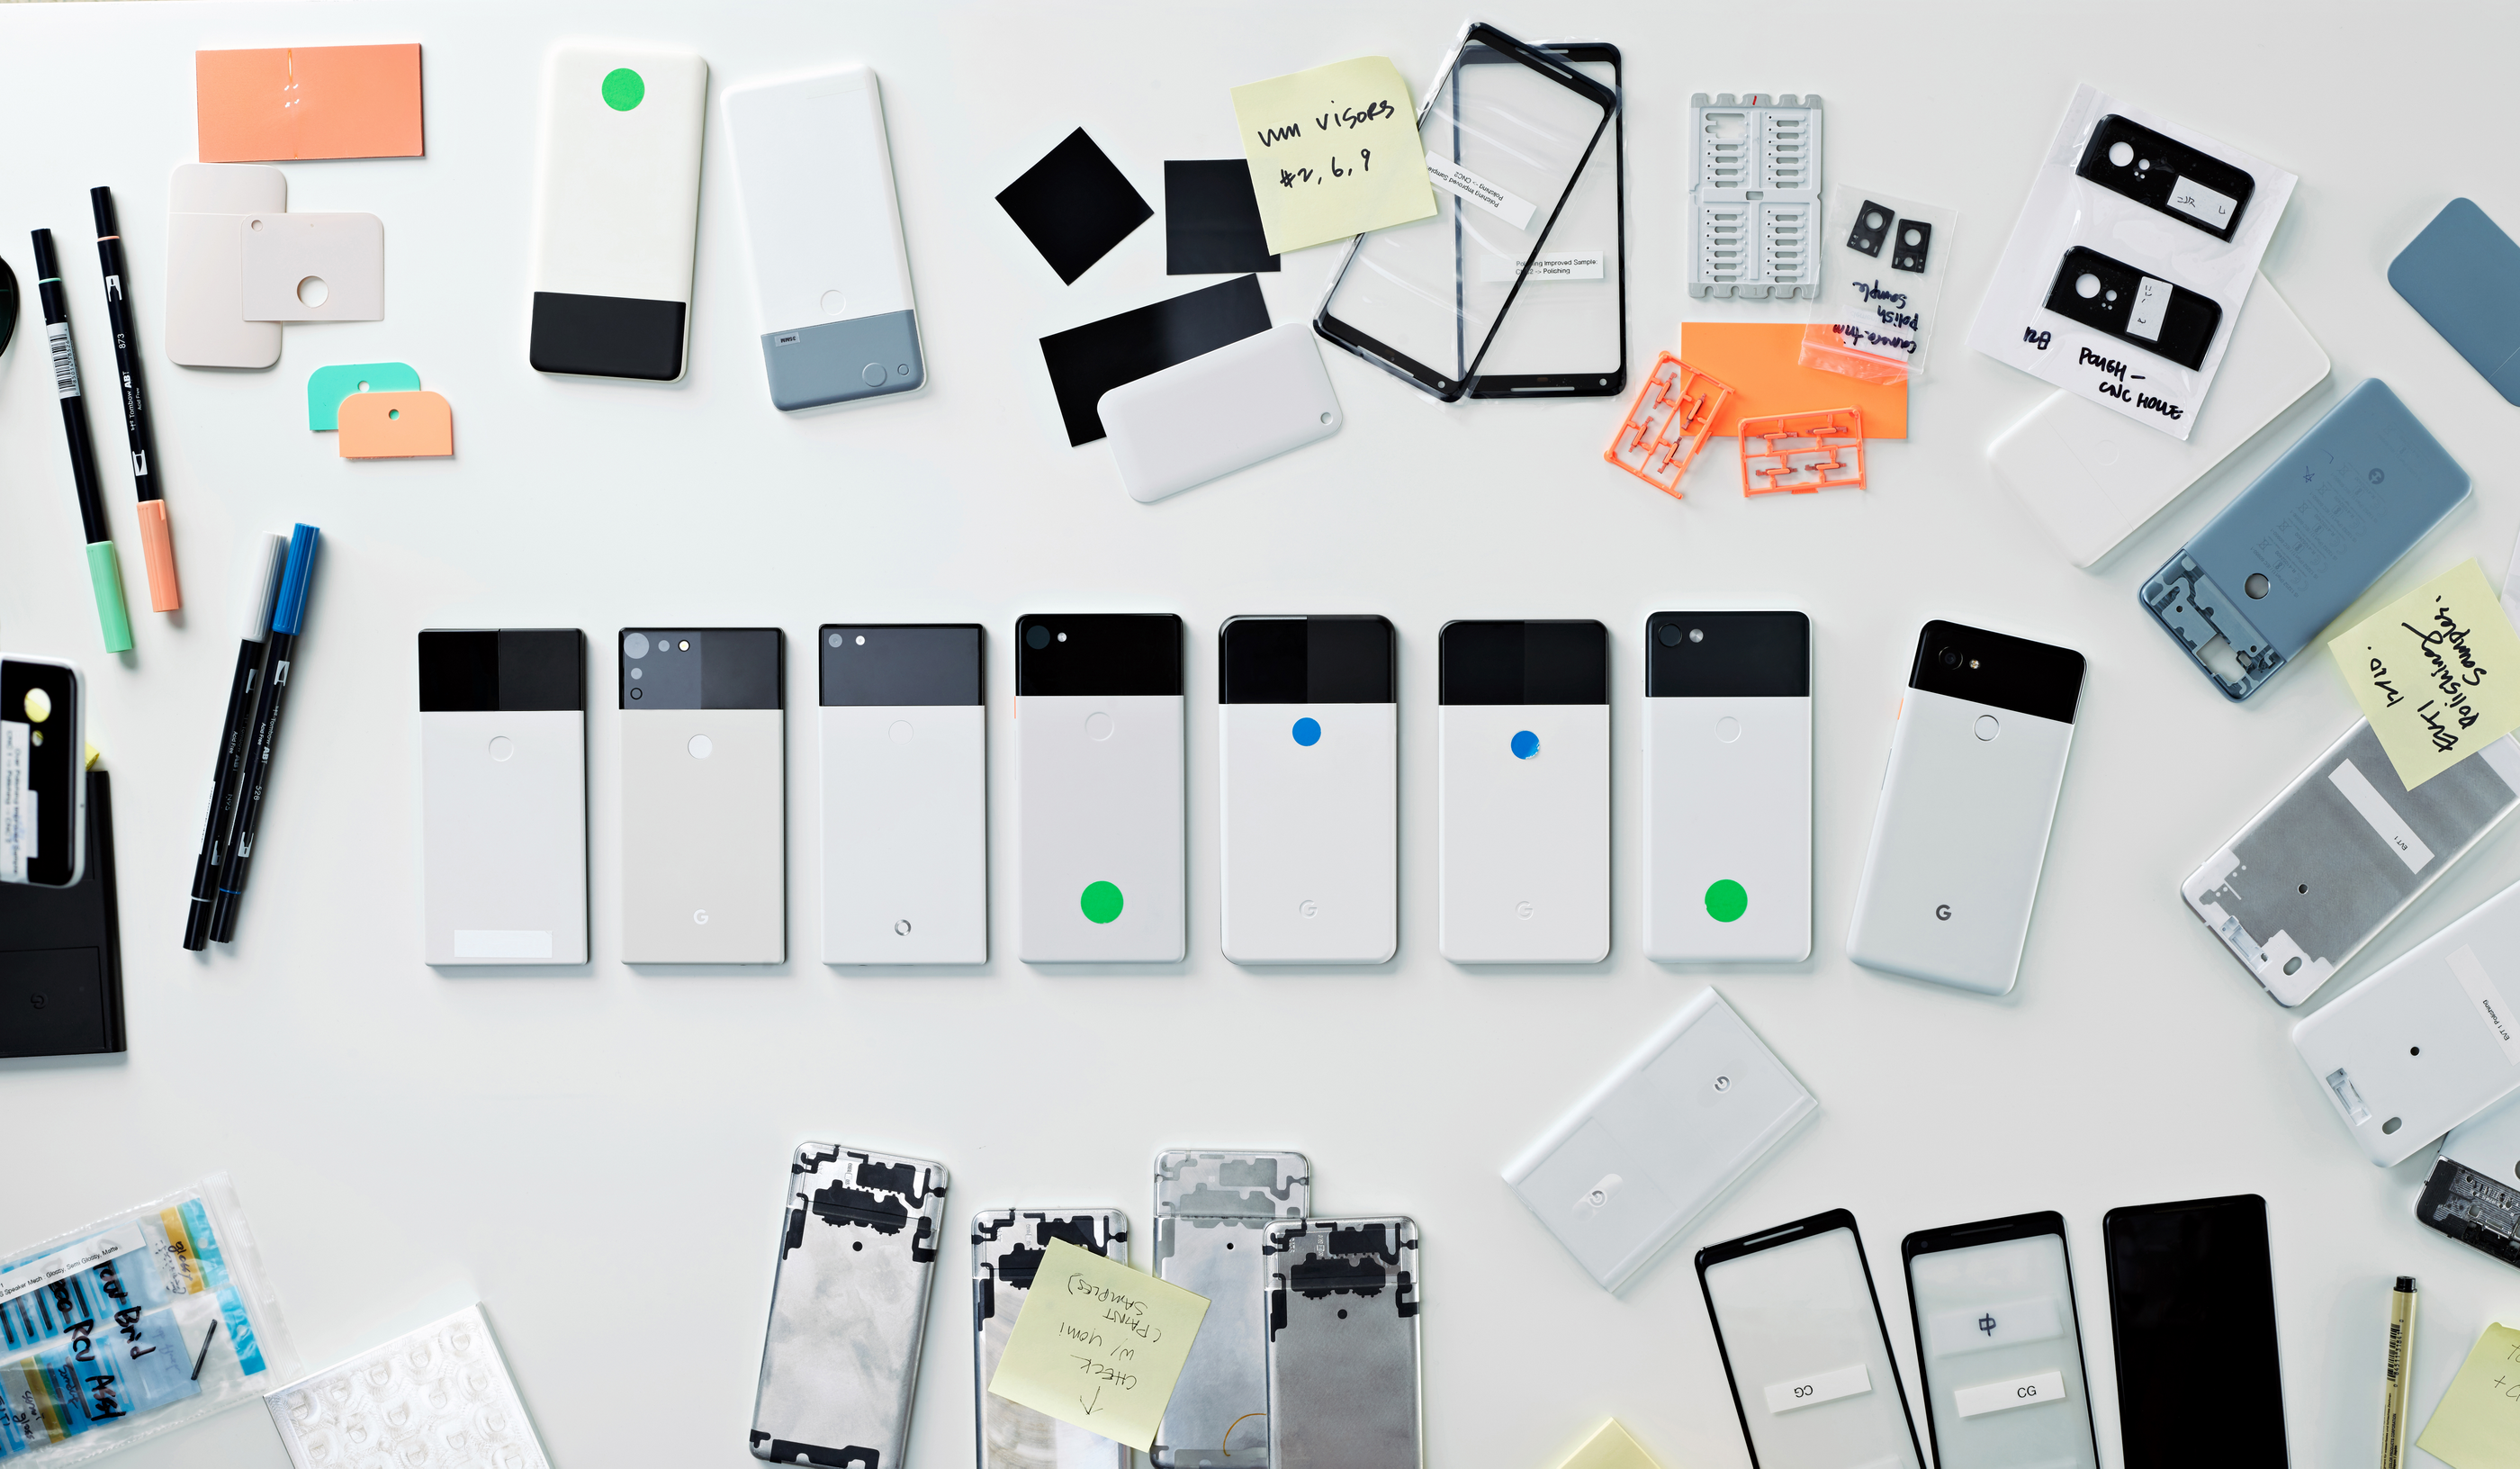 Google shares photos from the design process of the Pixel 2 ...